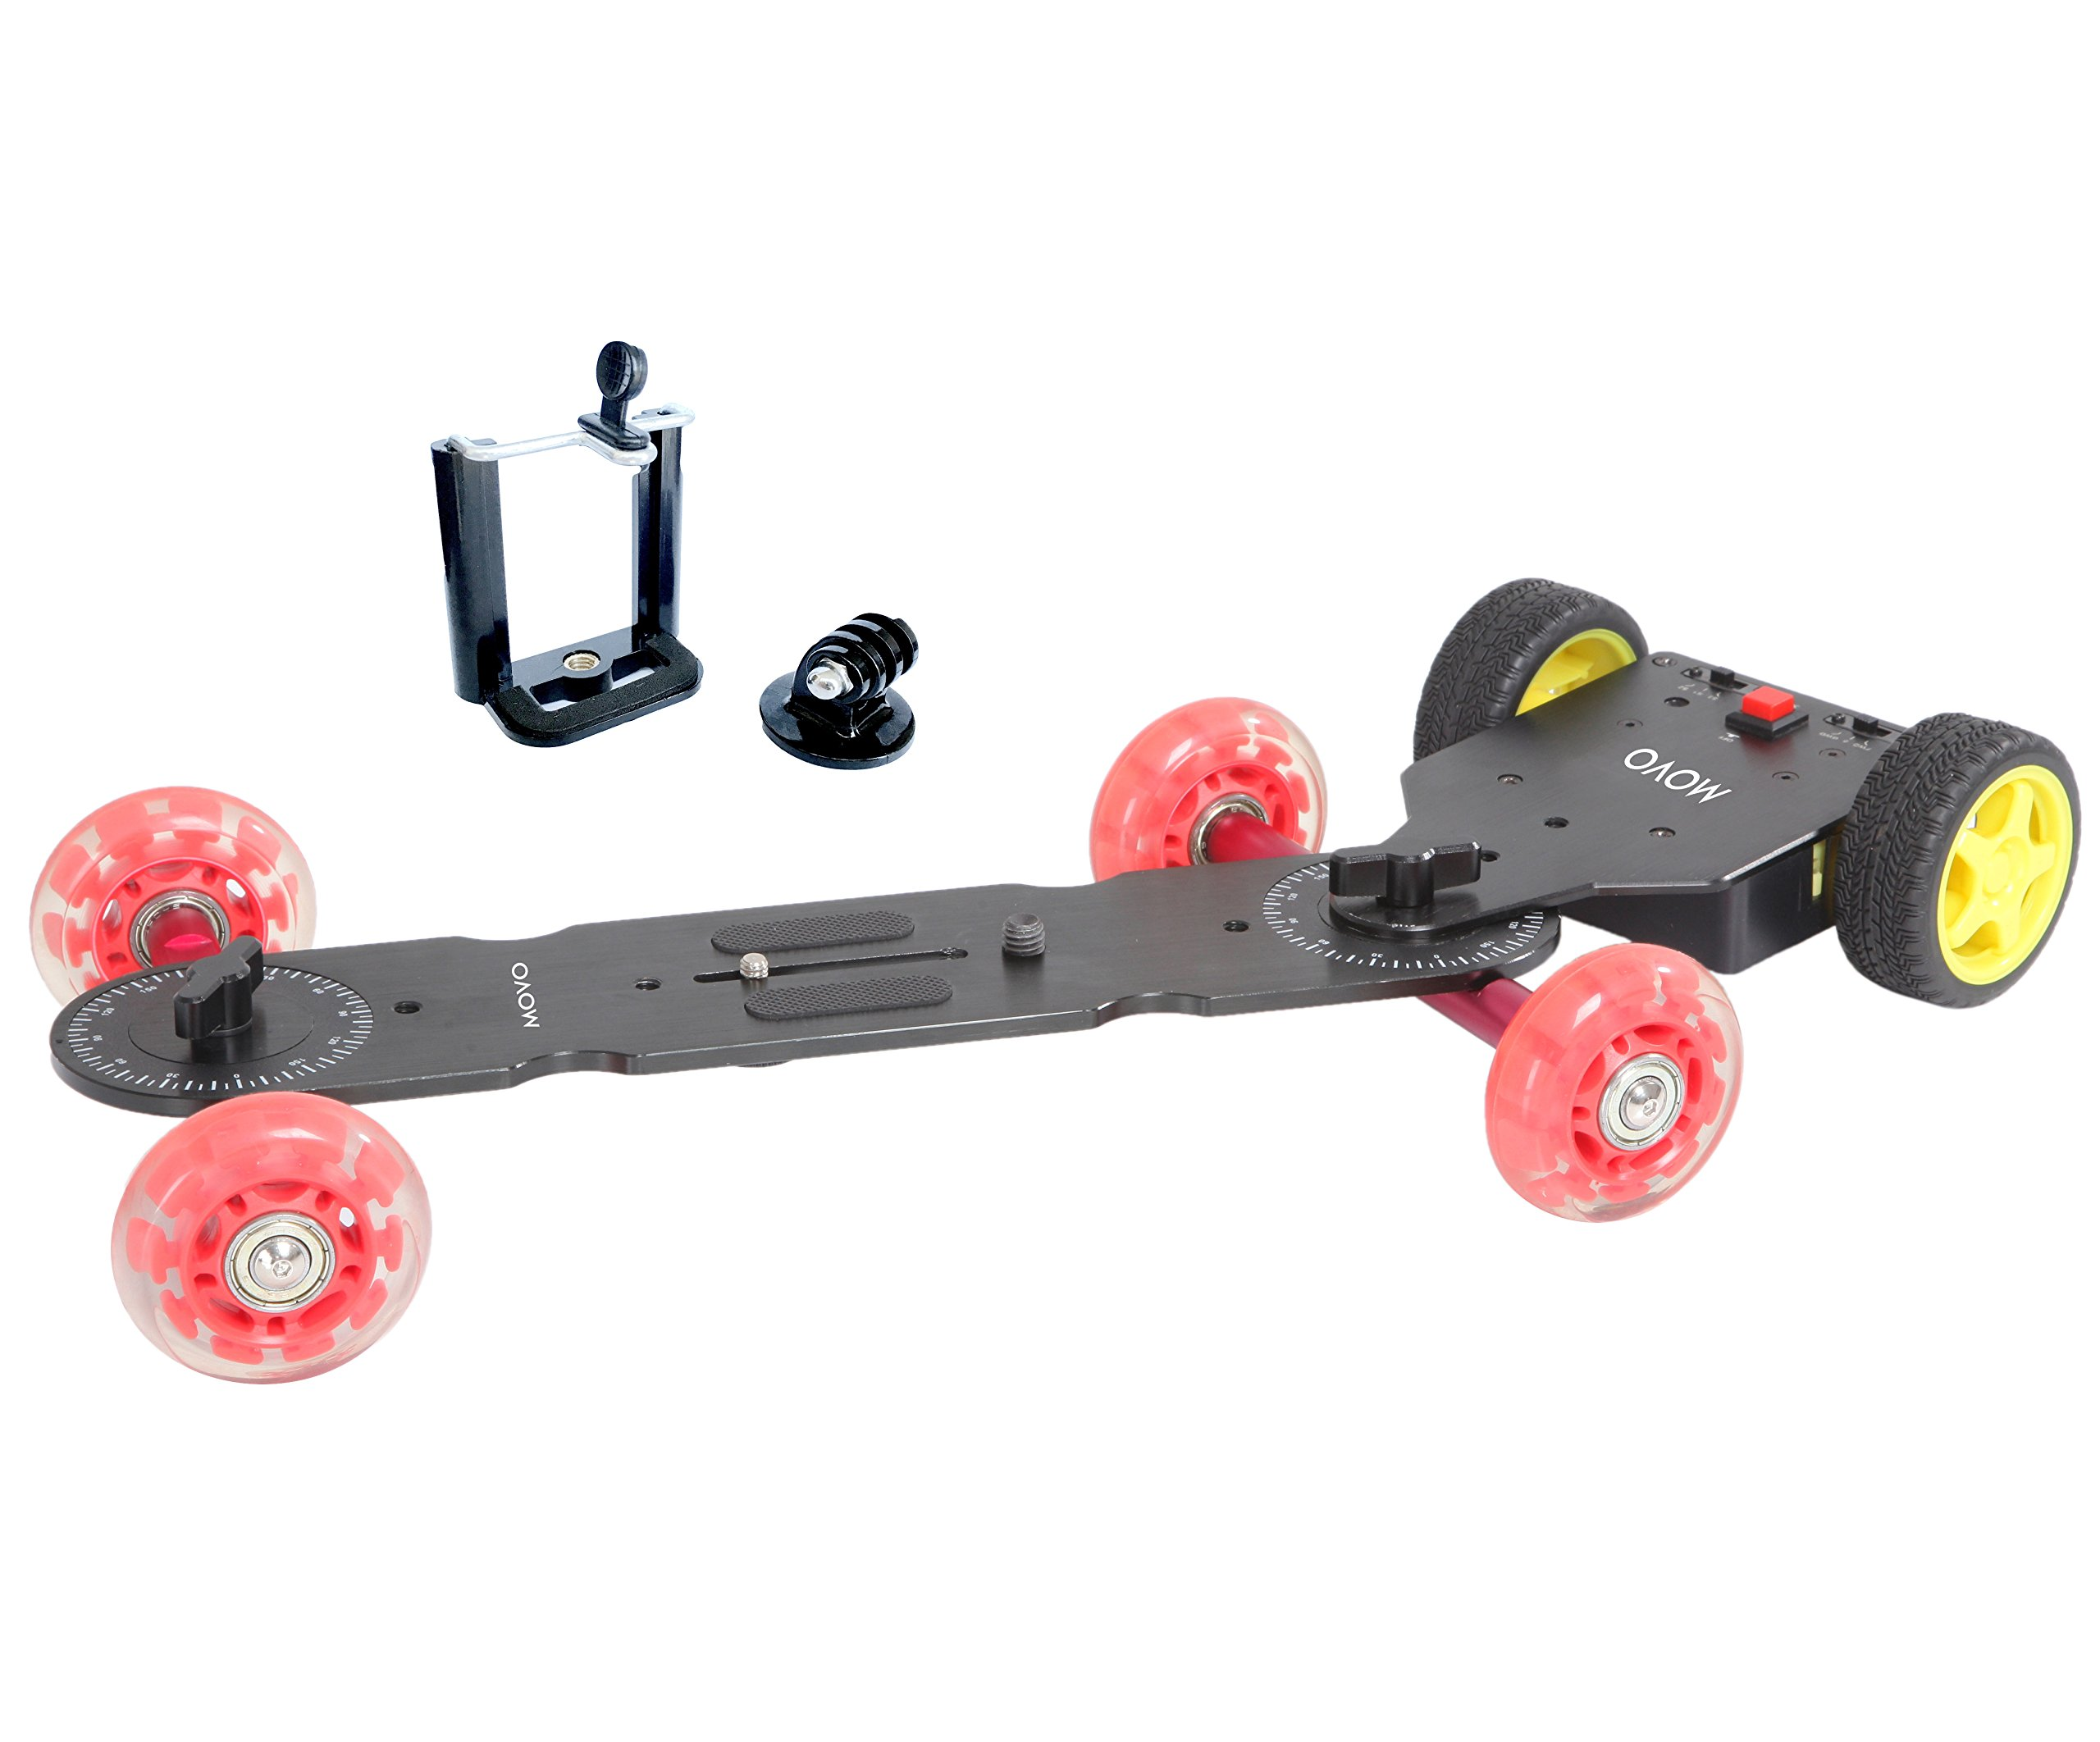 Movo Motorized Cine Skater Table Dolly Video Track Glider Bundle for DSLR Cameras, GoPro, iPhone, Android Smartphones (Long Version) by Movo